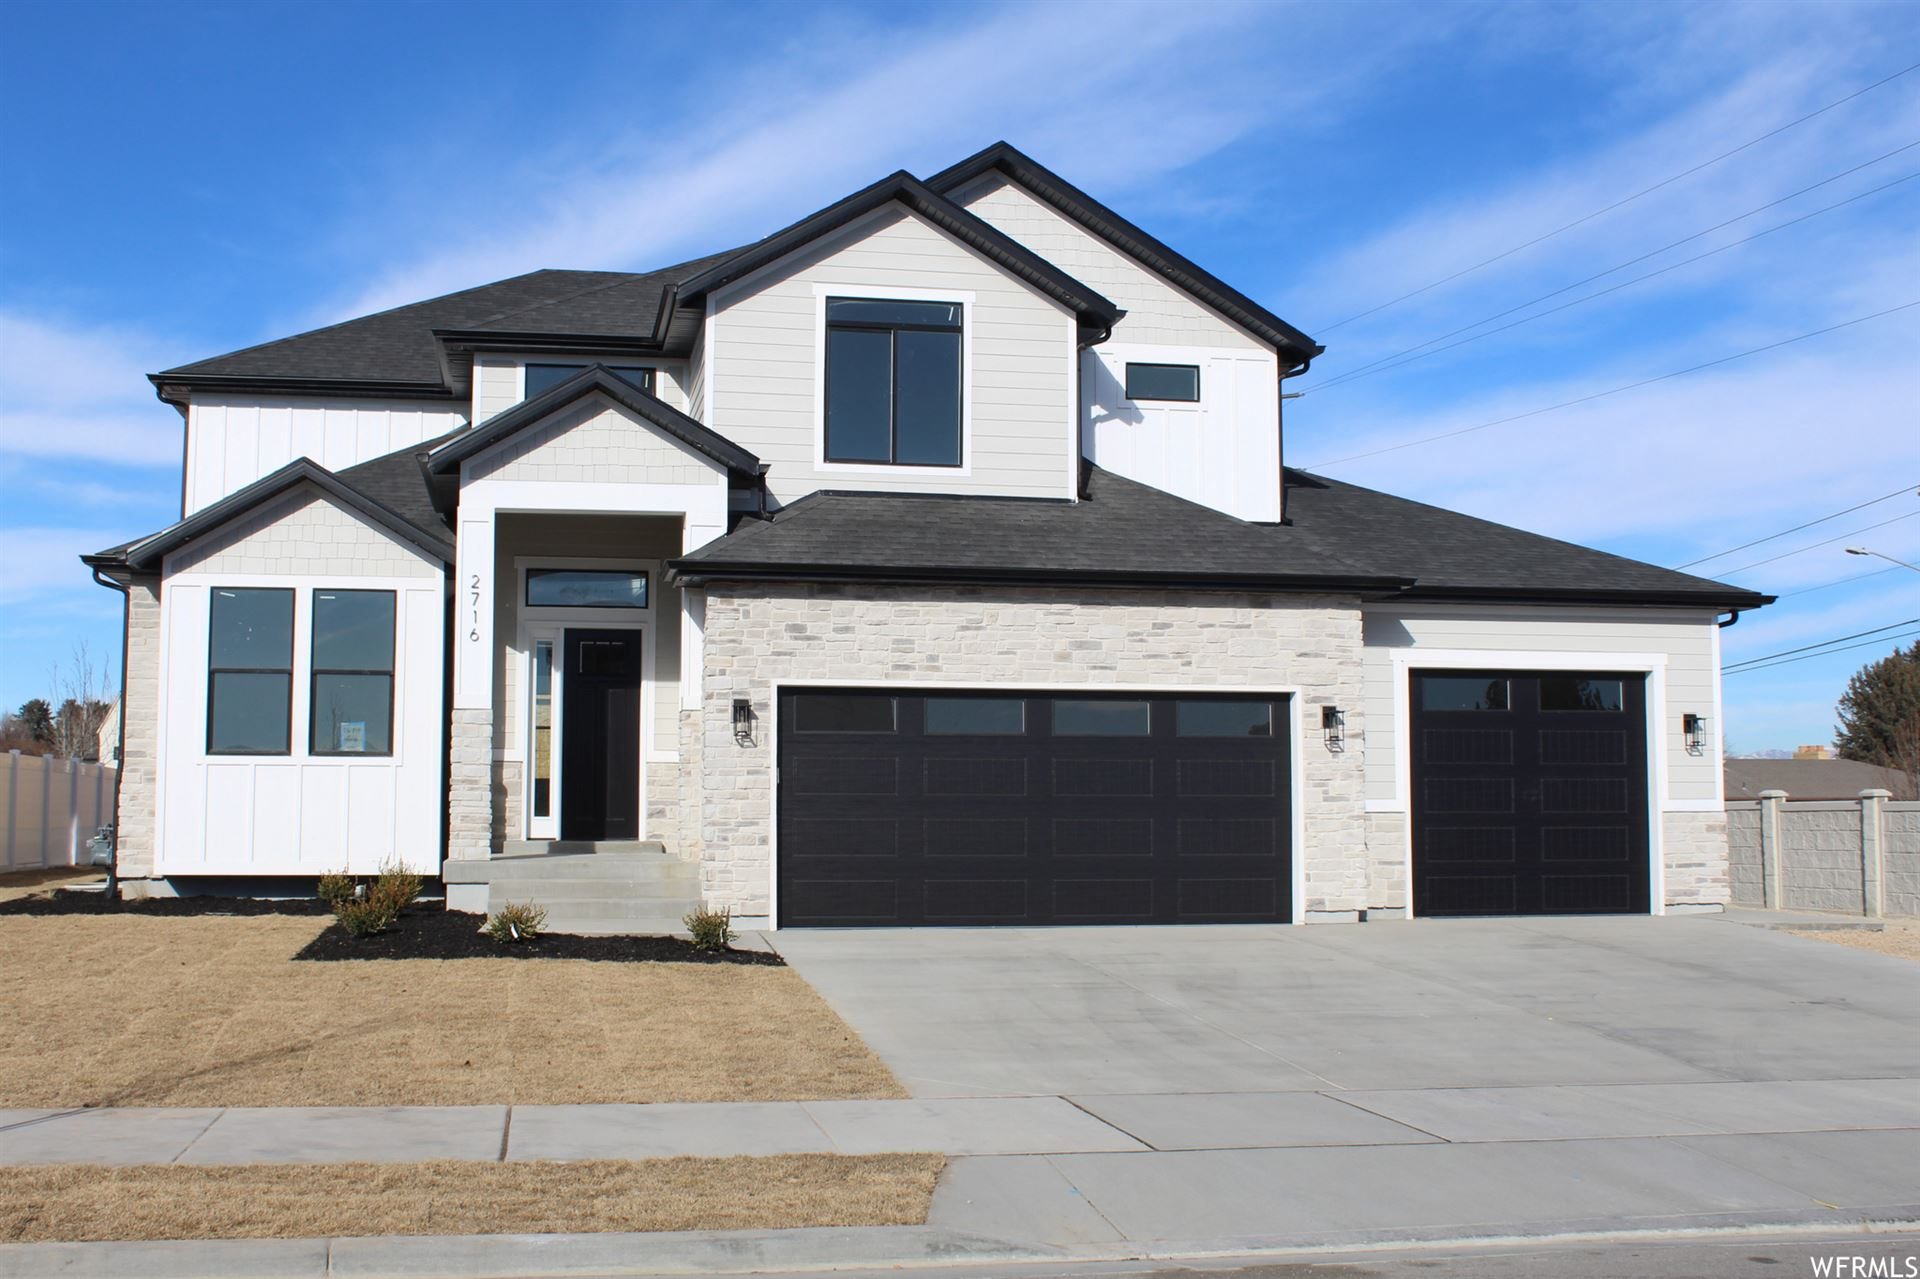 Photo of 2716 W URBAN RIDGE S RD, South Jordan, UT 84095 (MLS # 1720347)